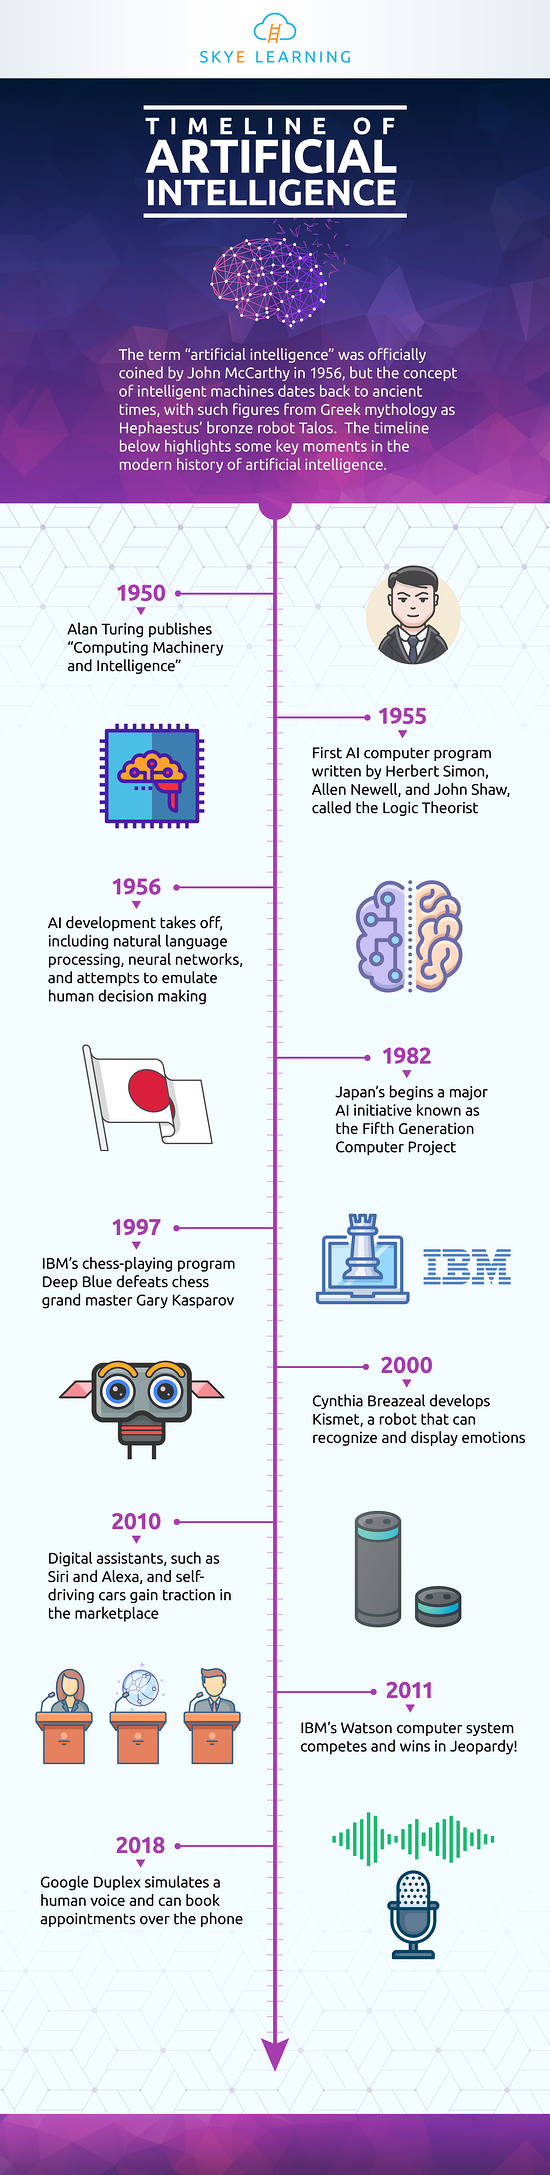 Timeline-of-Artificial-Intelligence-SL